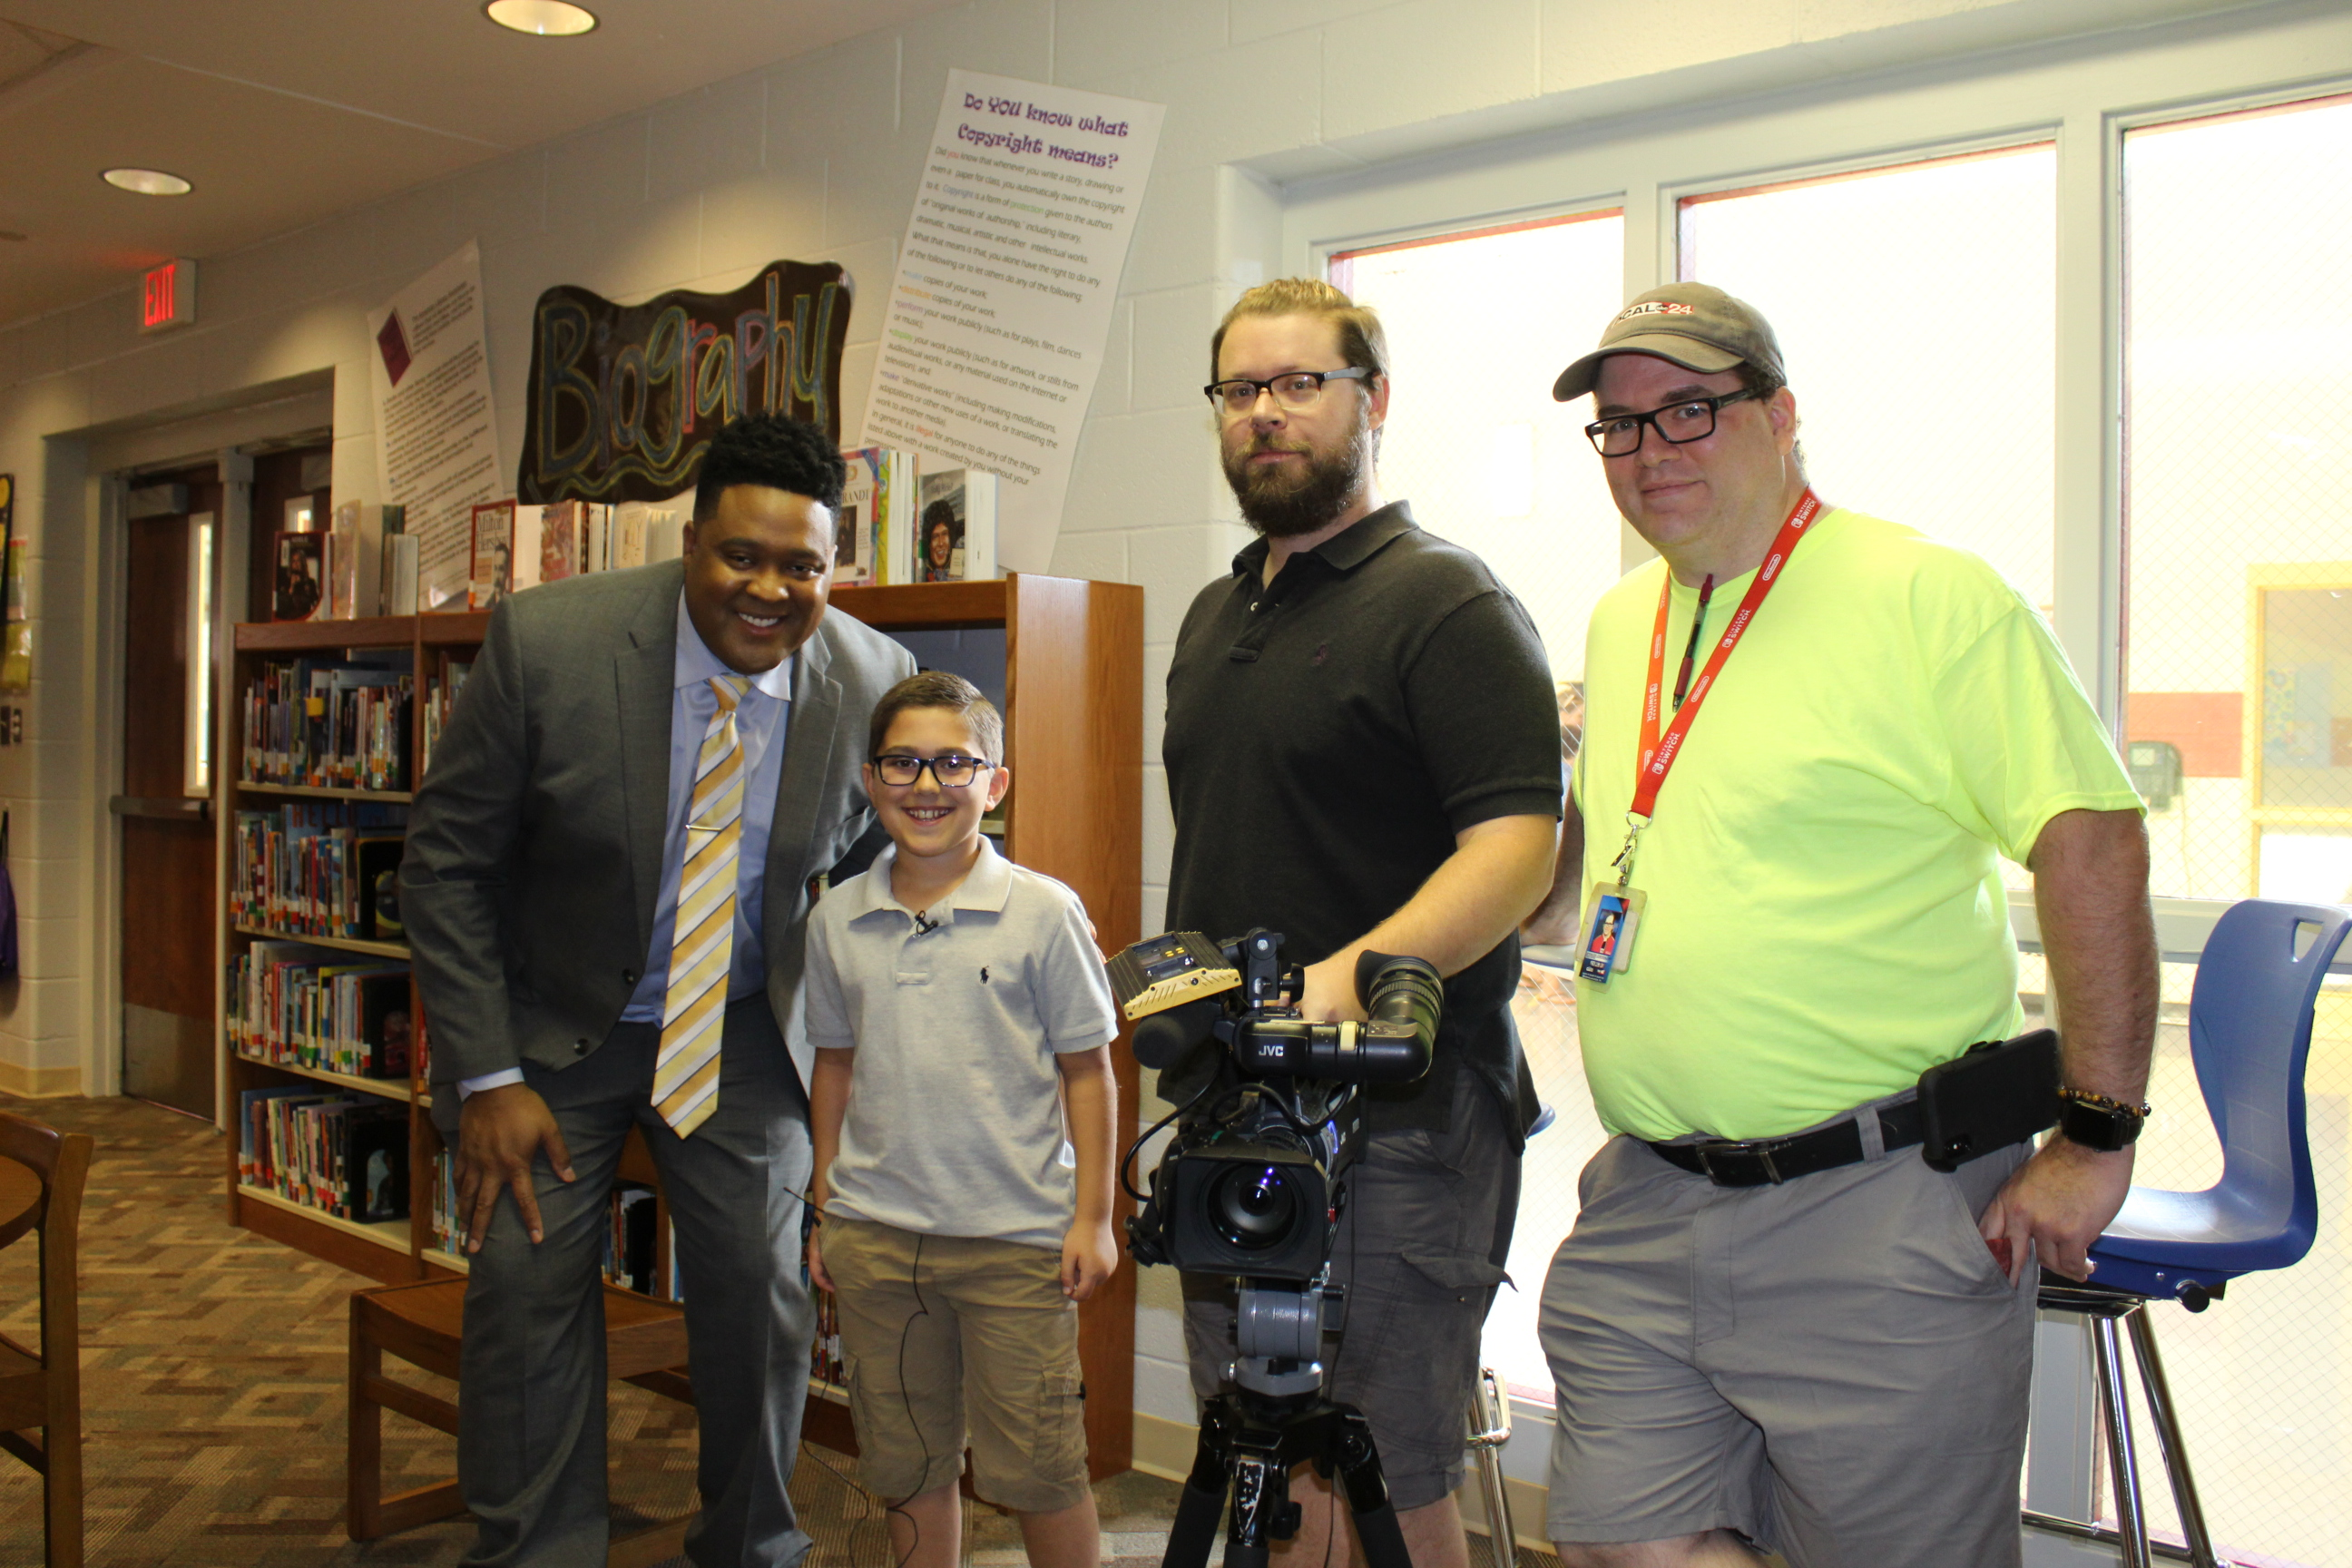 Local Cool Kid Gus Lafever is pictured with ABC News Anchor John Paul and his staff.